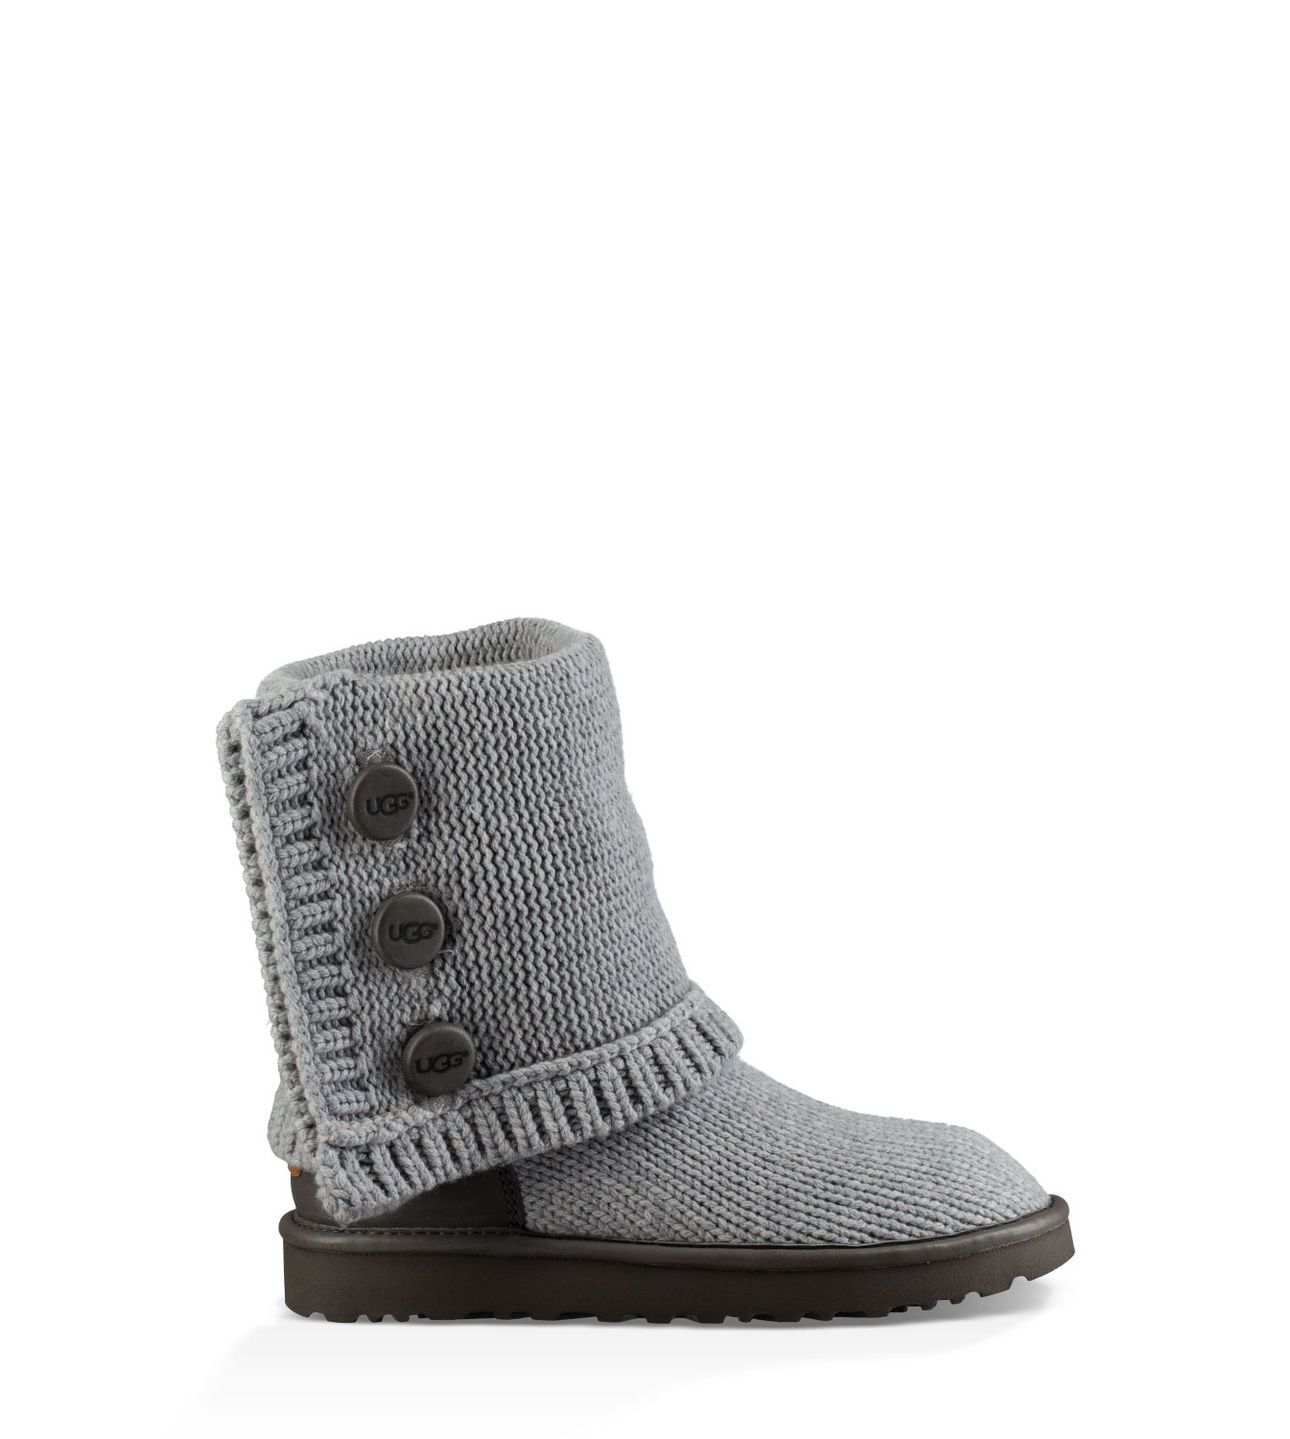 cd69d71780b Shop our collection of women's boots including the Classic Cardy ...